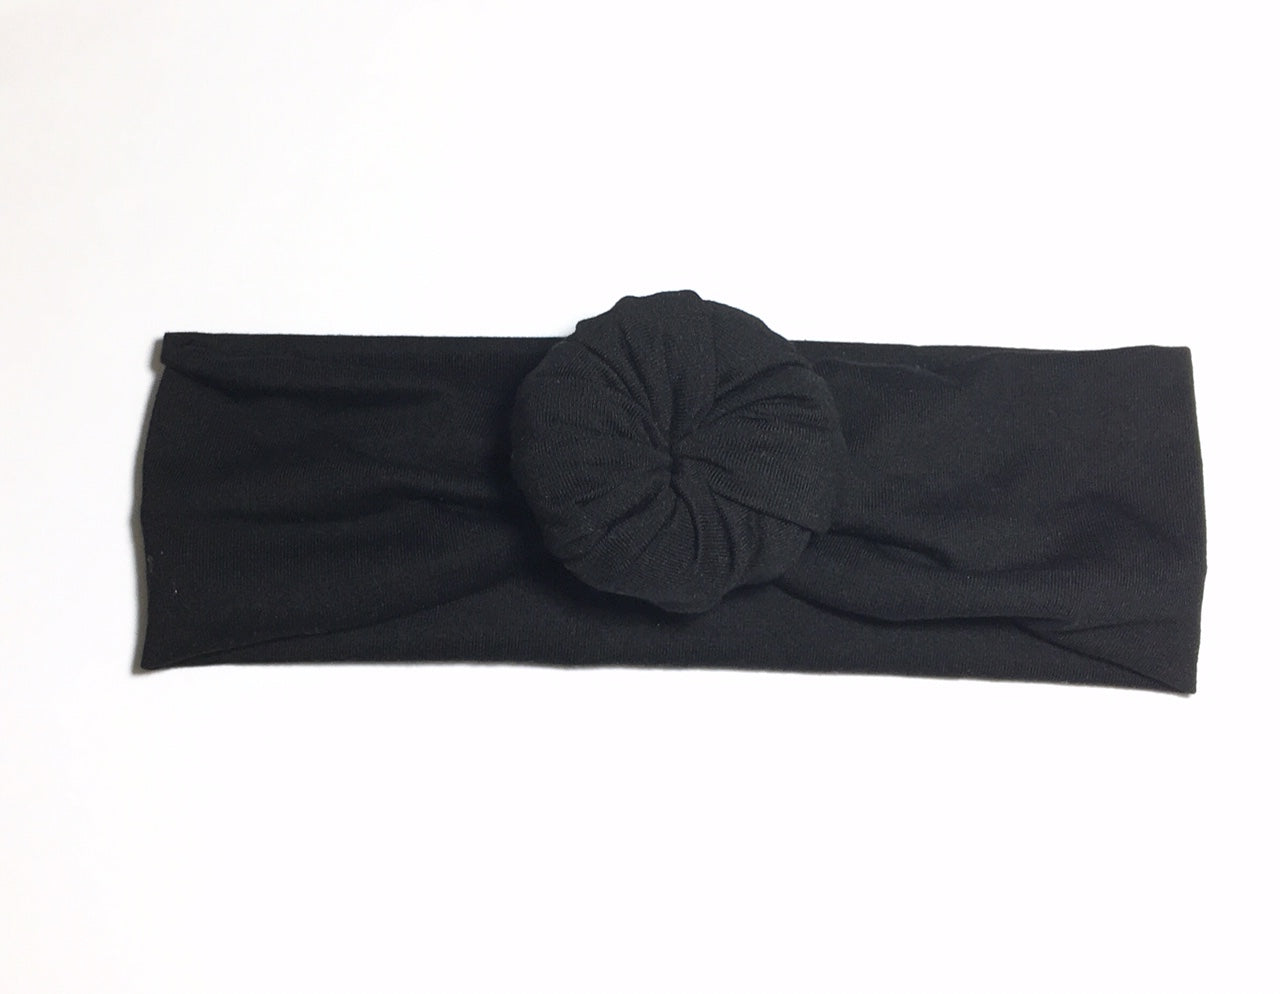 Bun Headband - Black - Size Regular - shabbyflowers.com